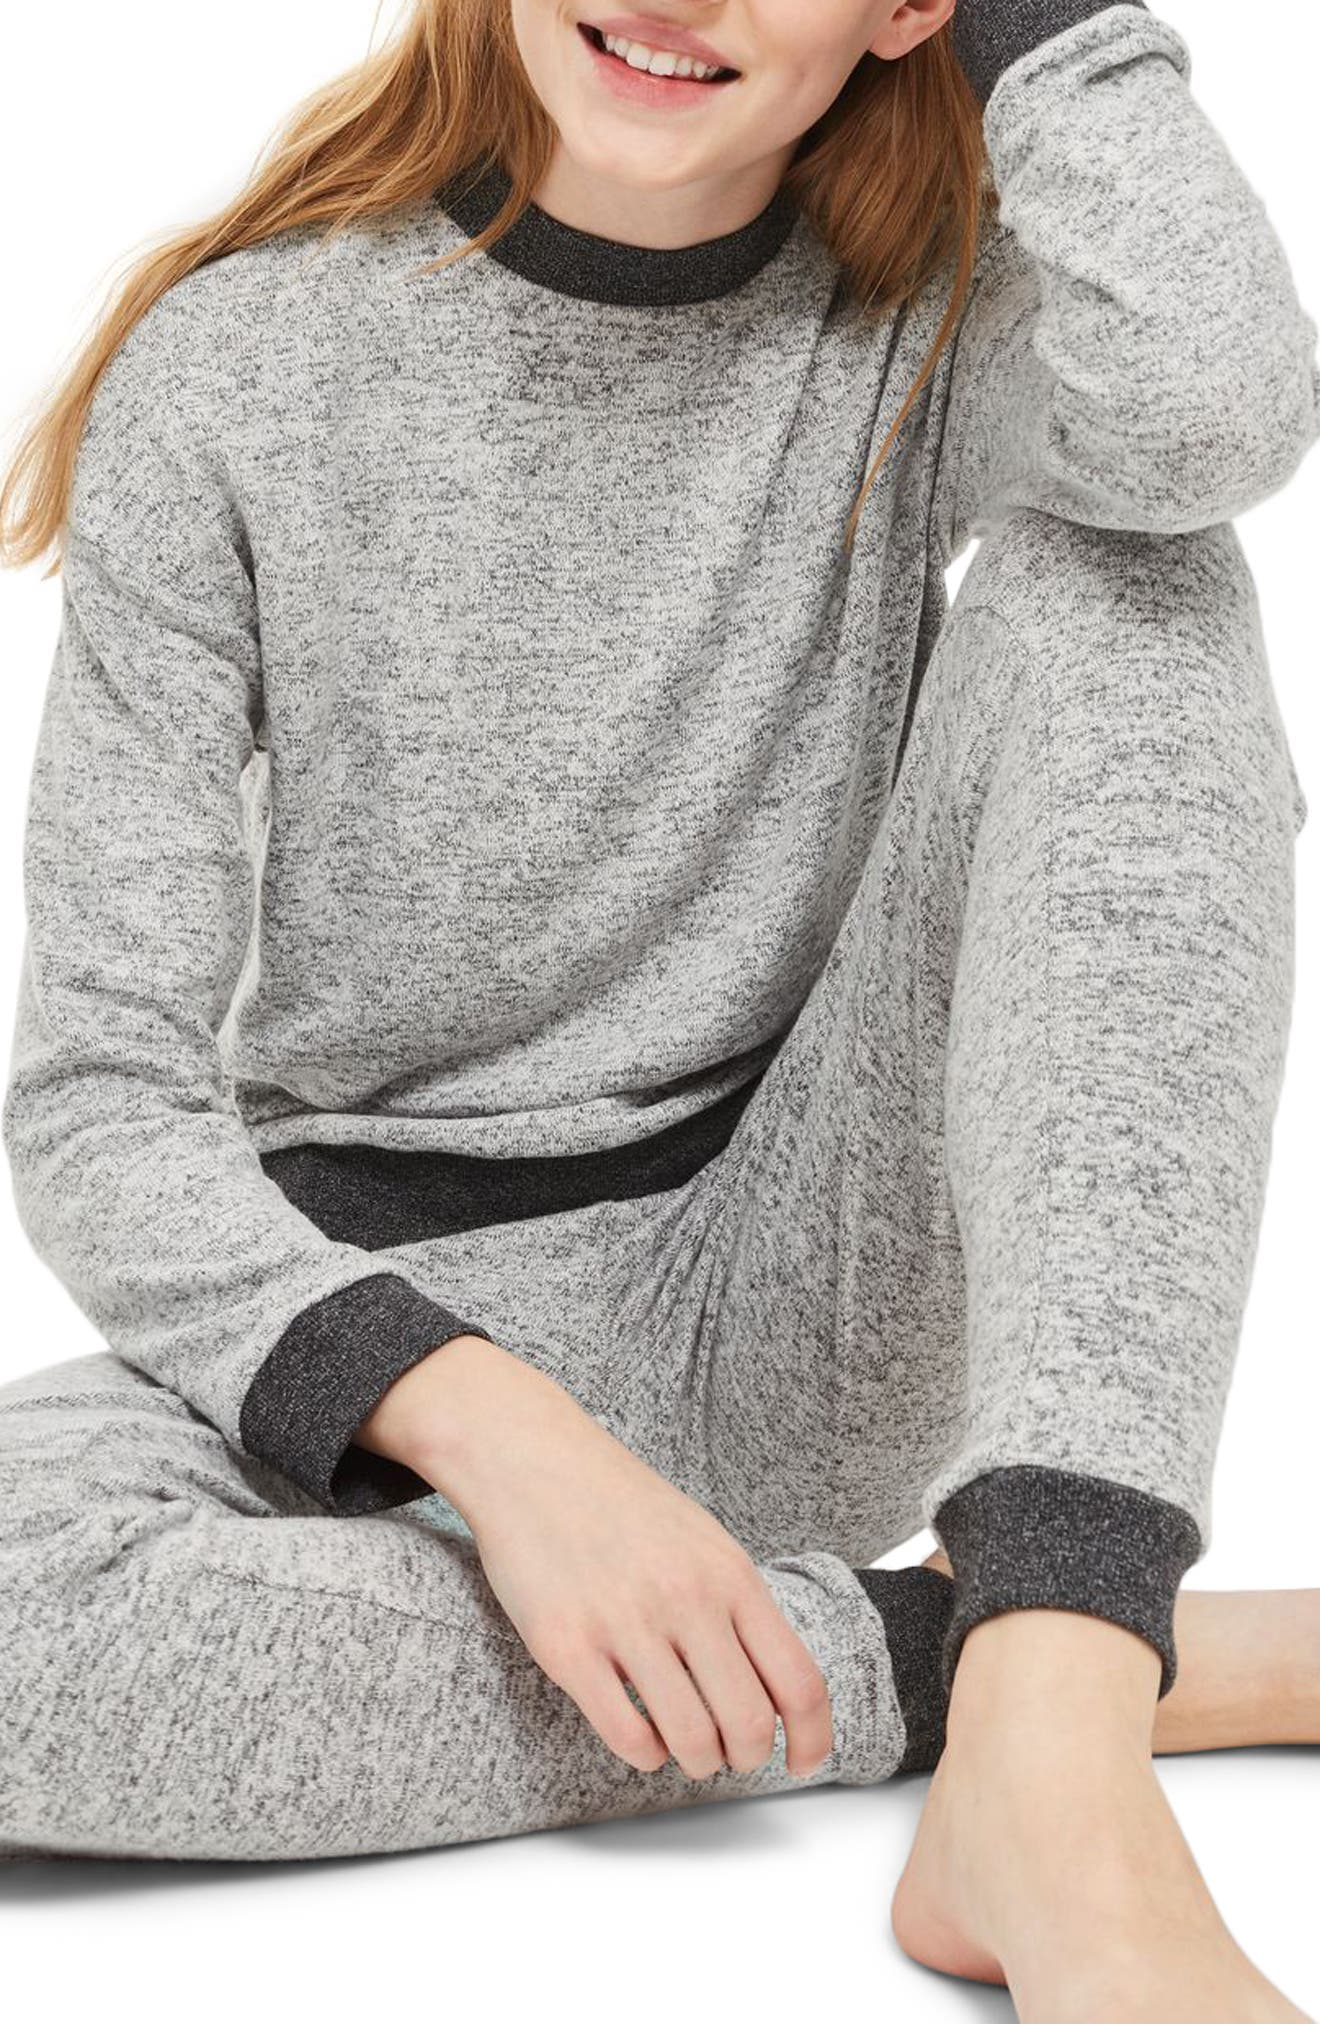 Alternate Image 1 Selected - Topshop Soft Sweatshirt